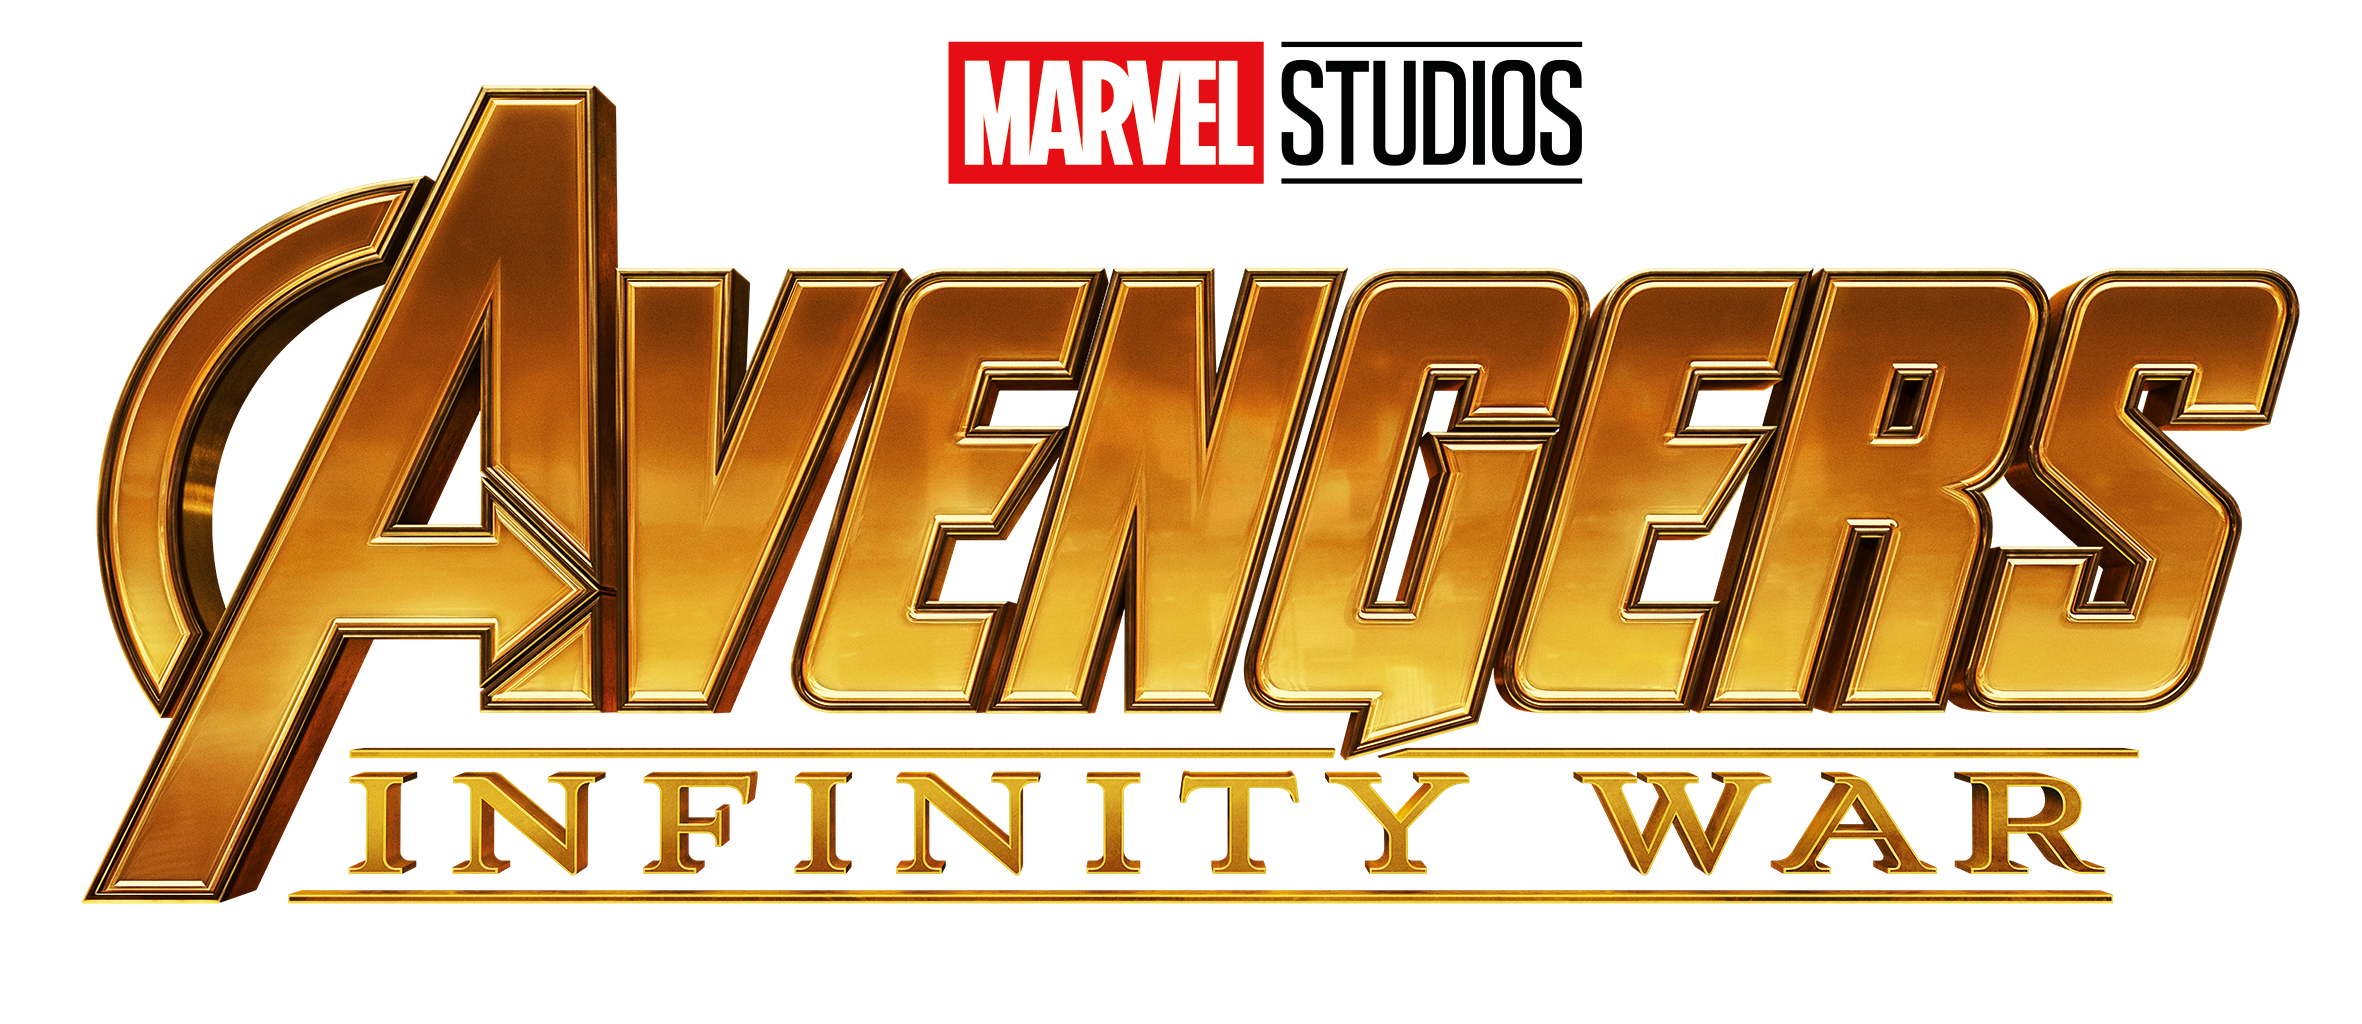 Infinity transparent avengers war. Right now i got